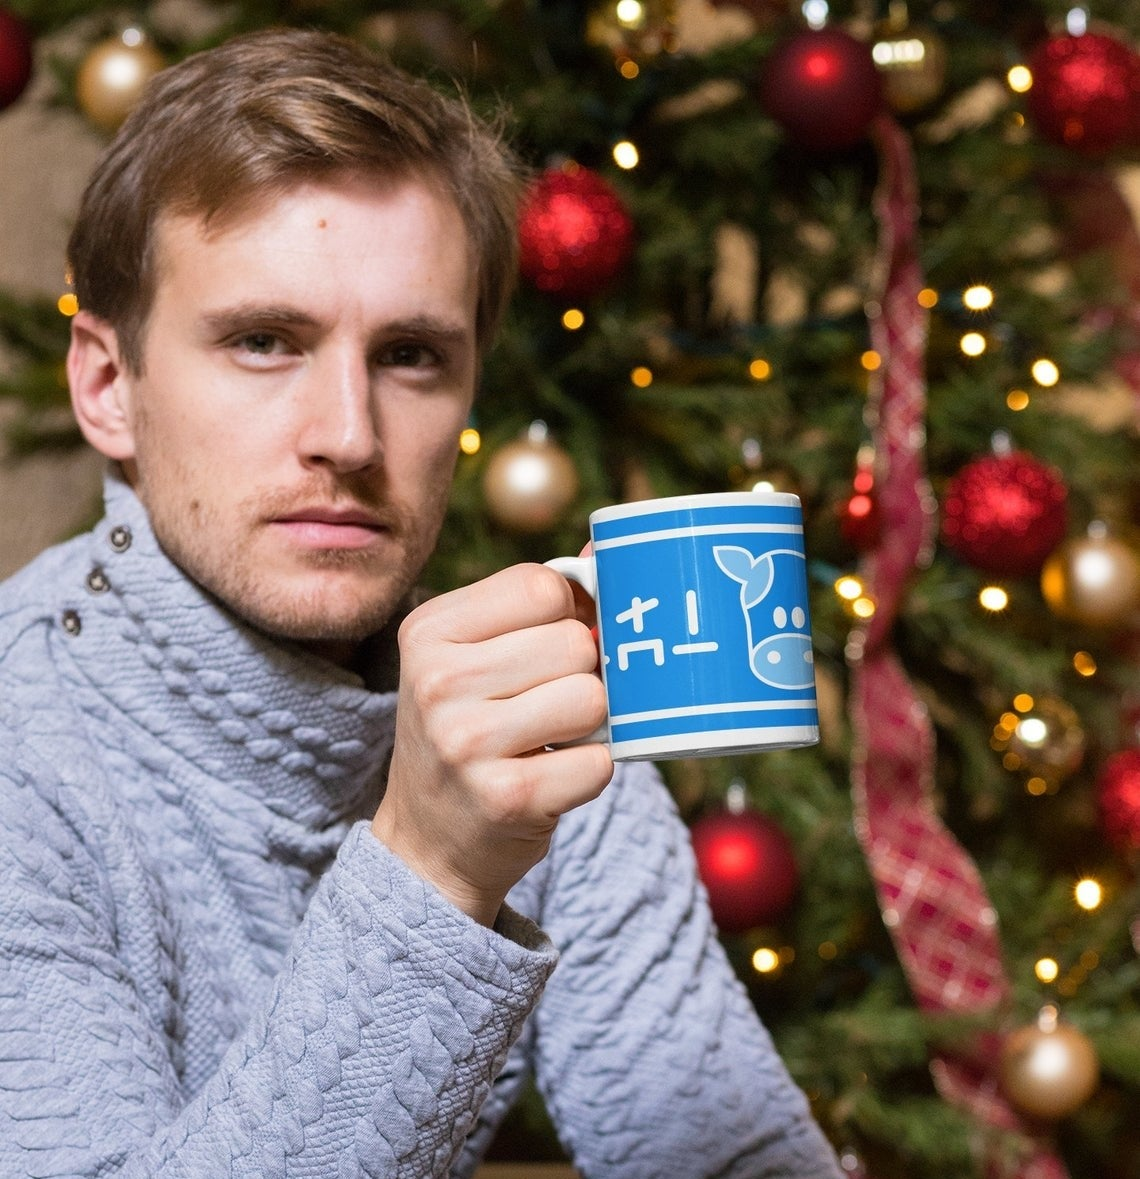 model drinks from mug with blue cow label on it